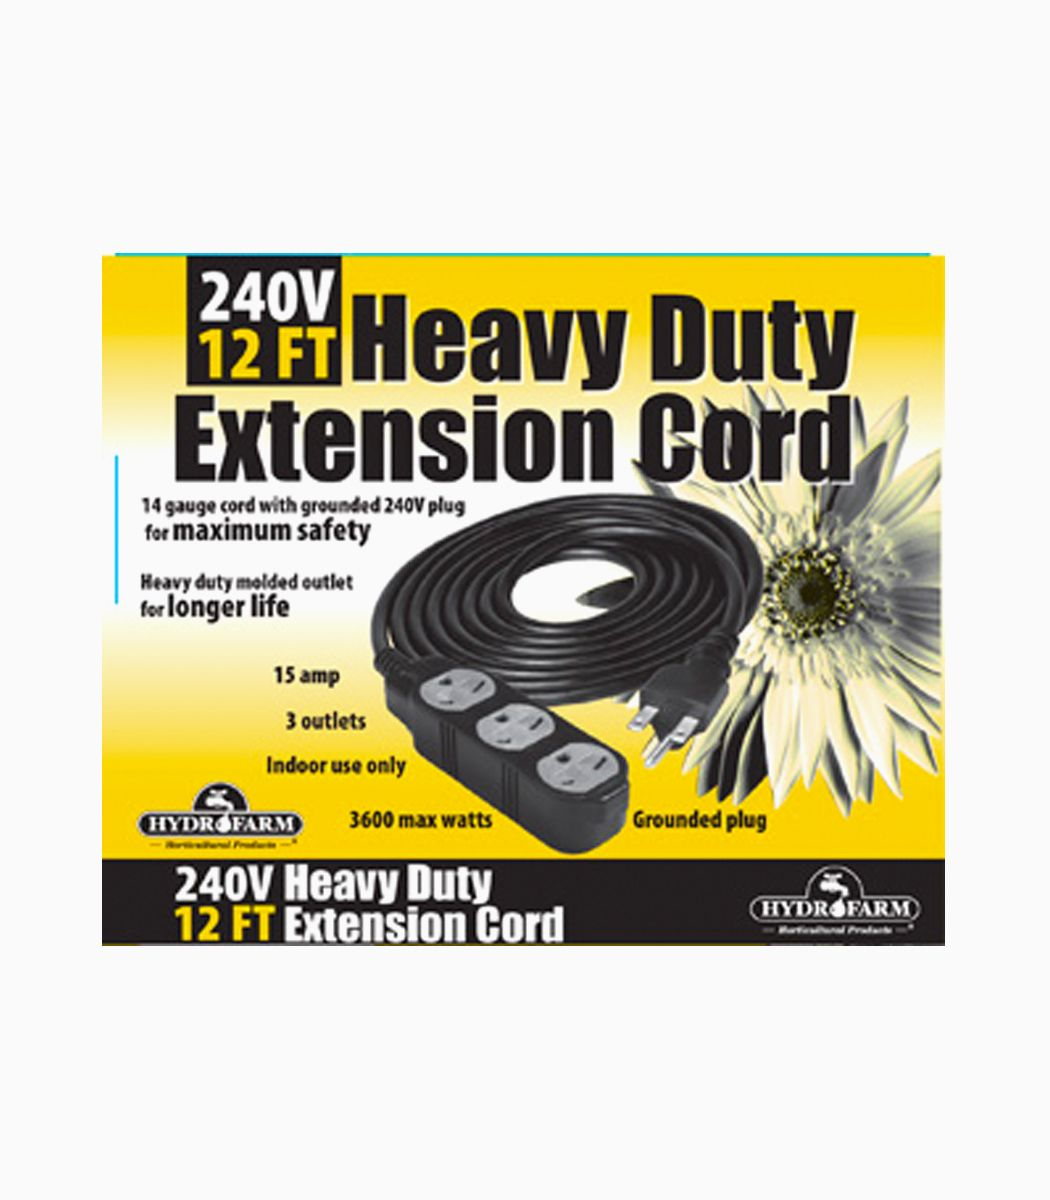 Heavy Duty Extension Cord 240v 12 Greenlightsdirect